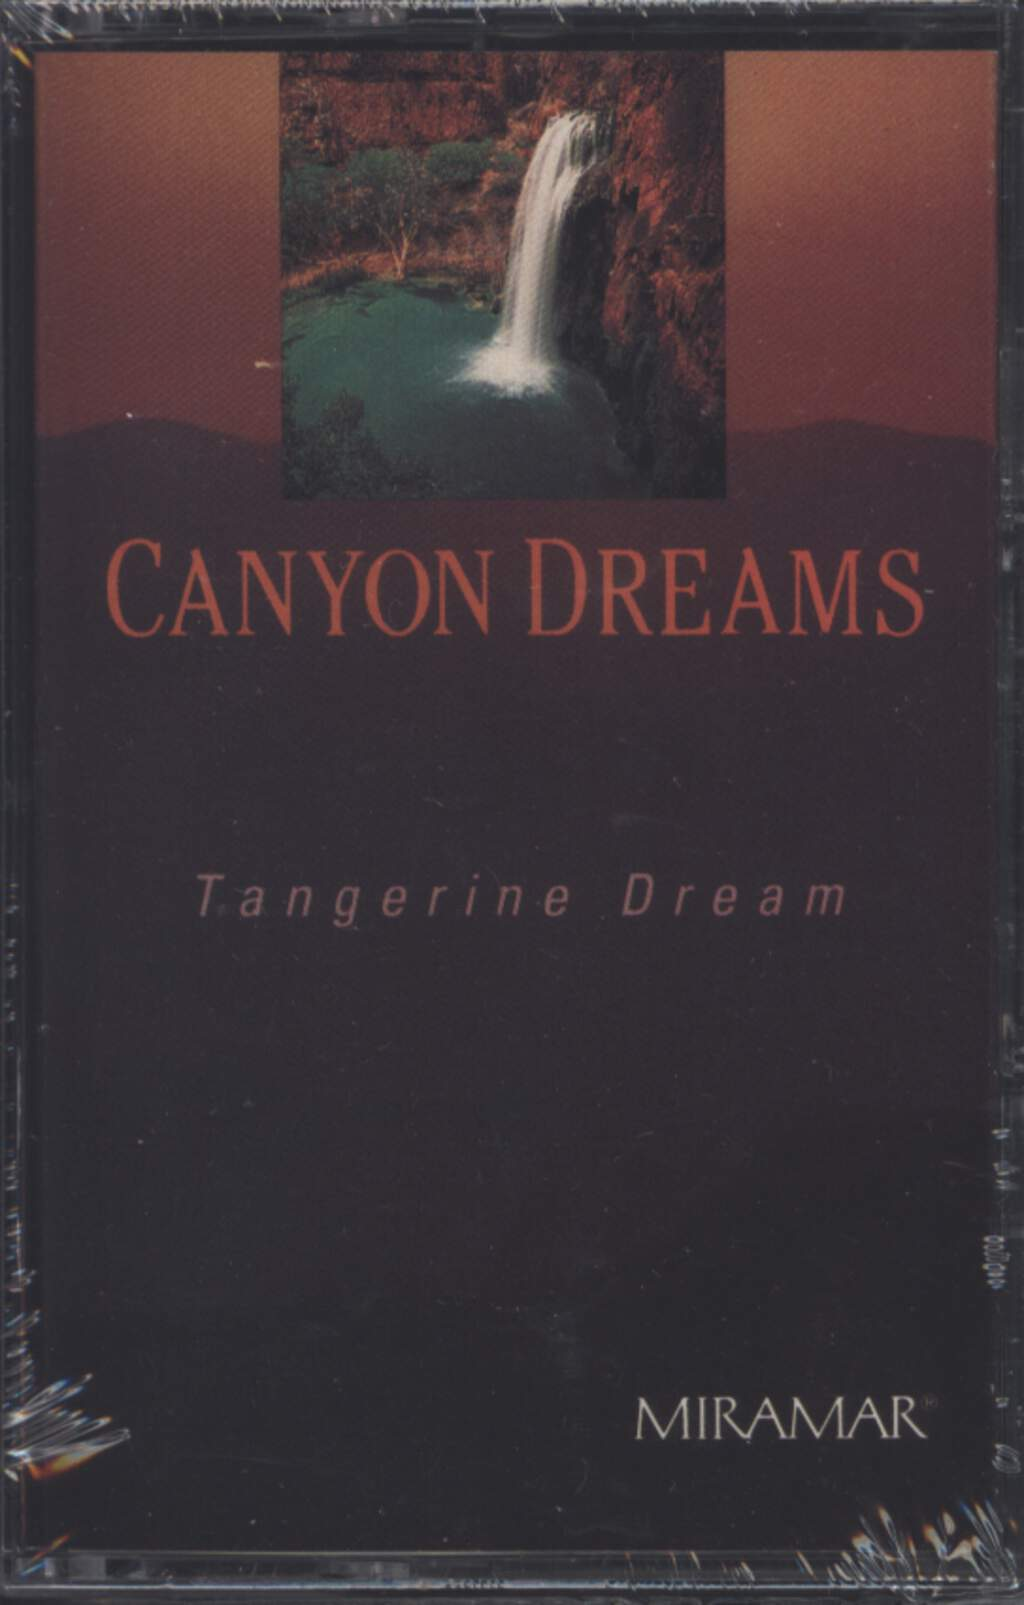 Tangerine Dream: Canyon Dreams, Compact Cassette